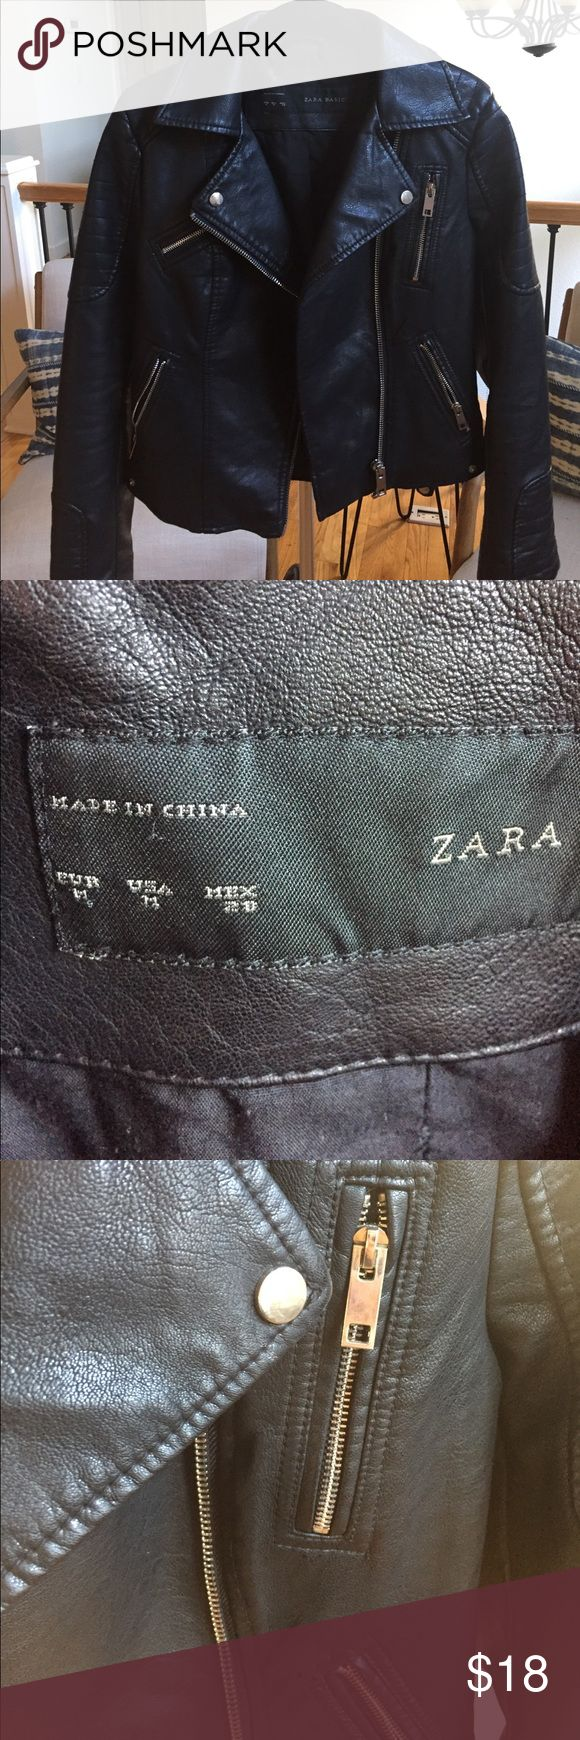 Zara Moto Jacket size M Faux leather biker jacket